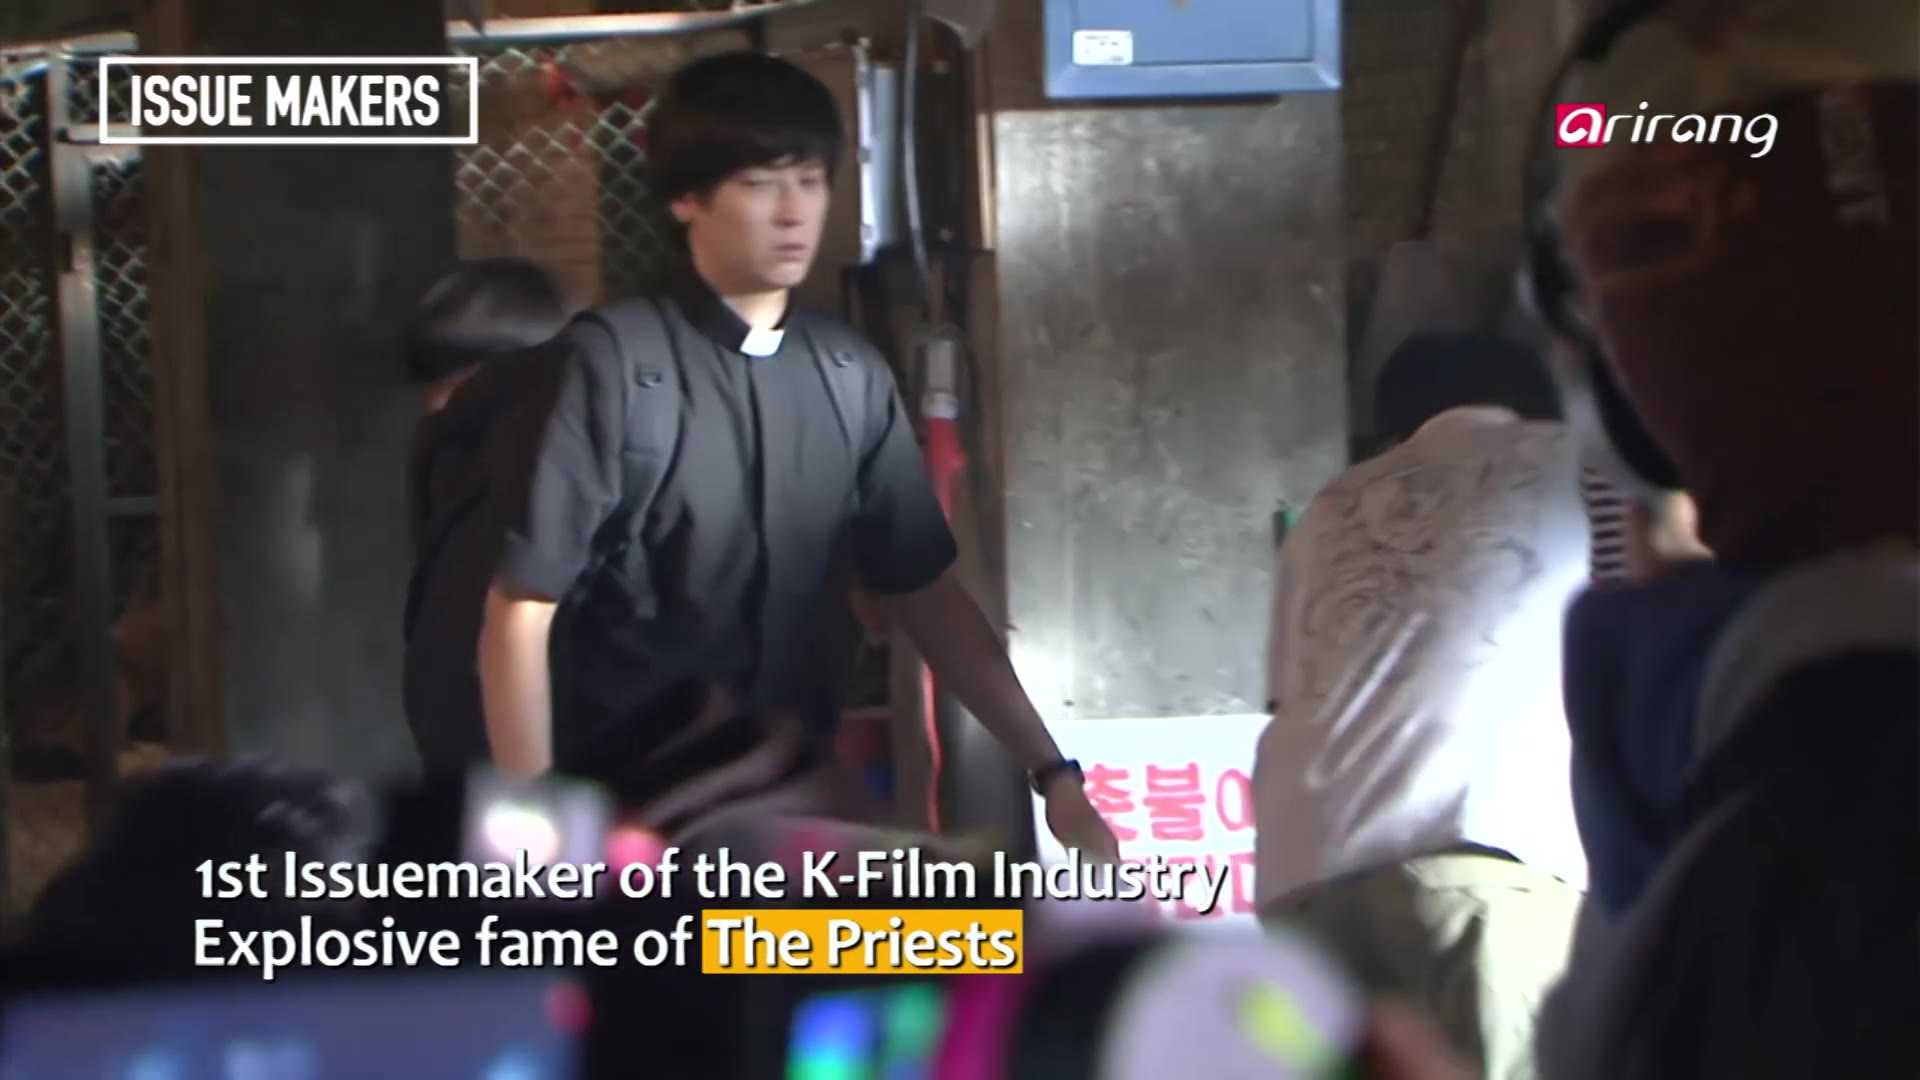 Hottest Issues for the K-film Scene - Issue Makers